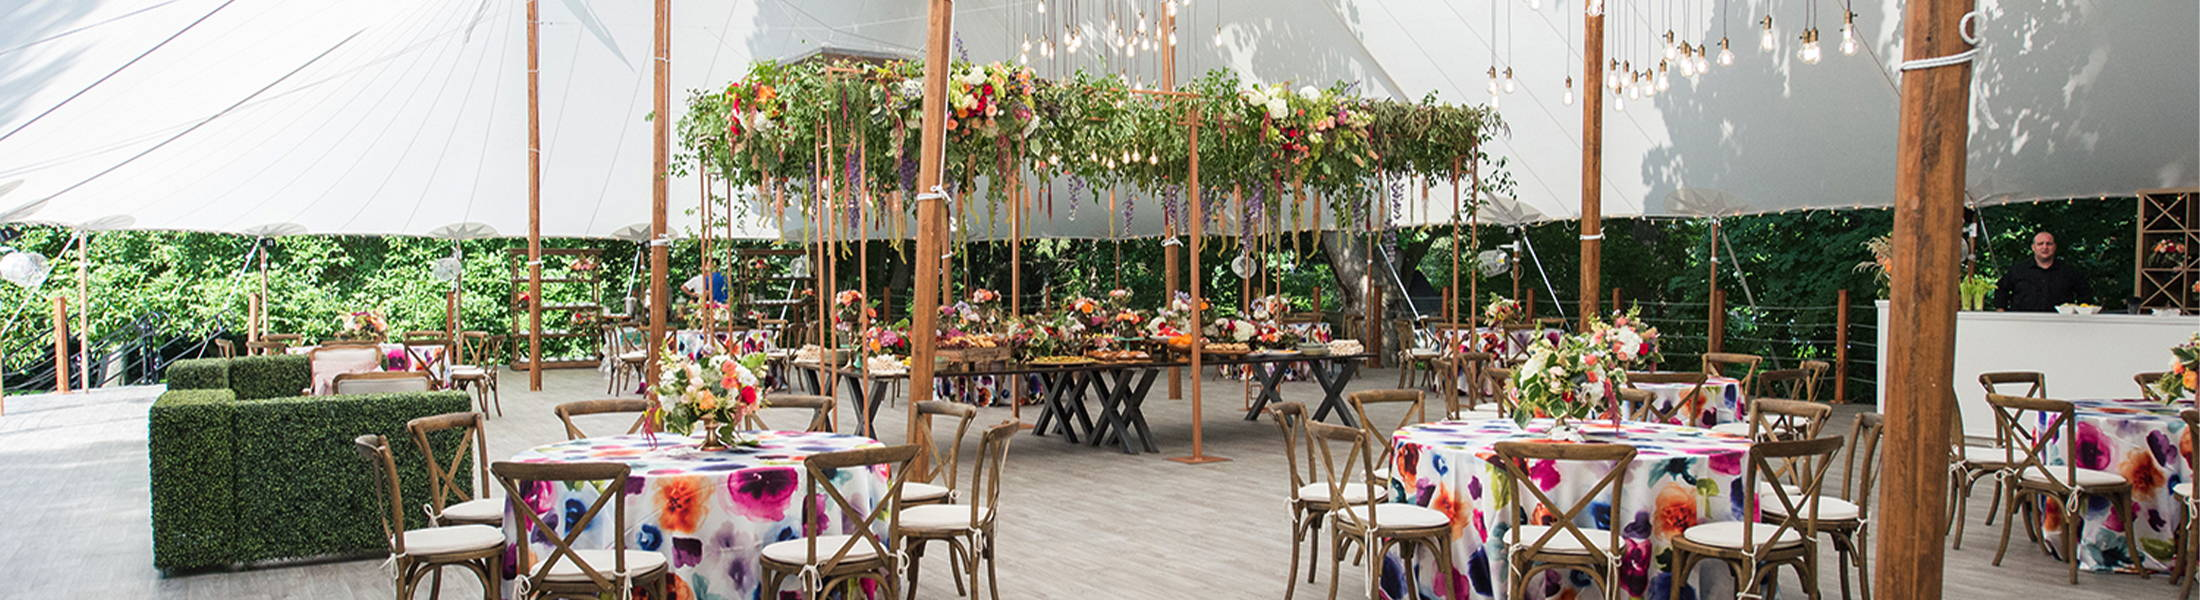 Pittsford NY Tented wedding | Pittsford Florist | Wedding Floral